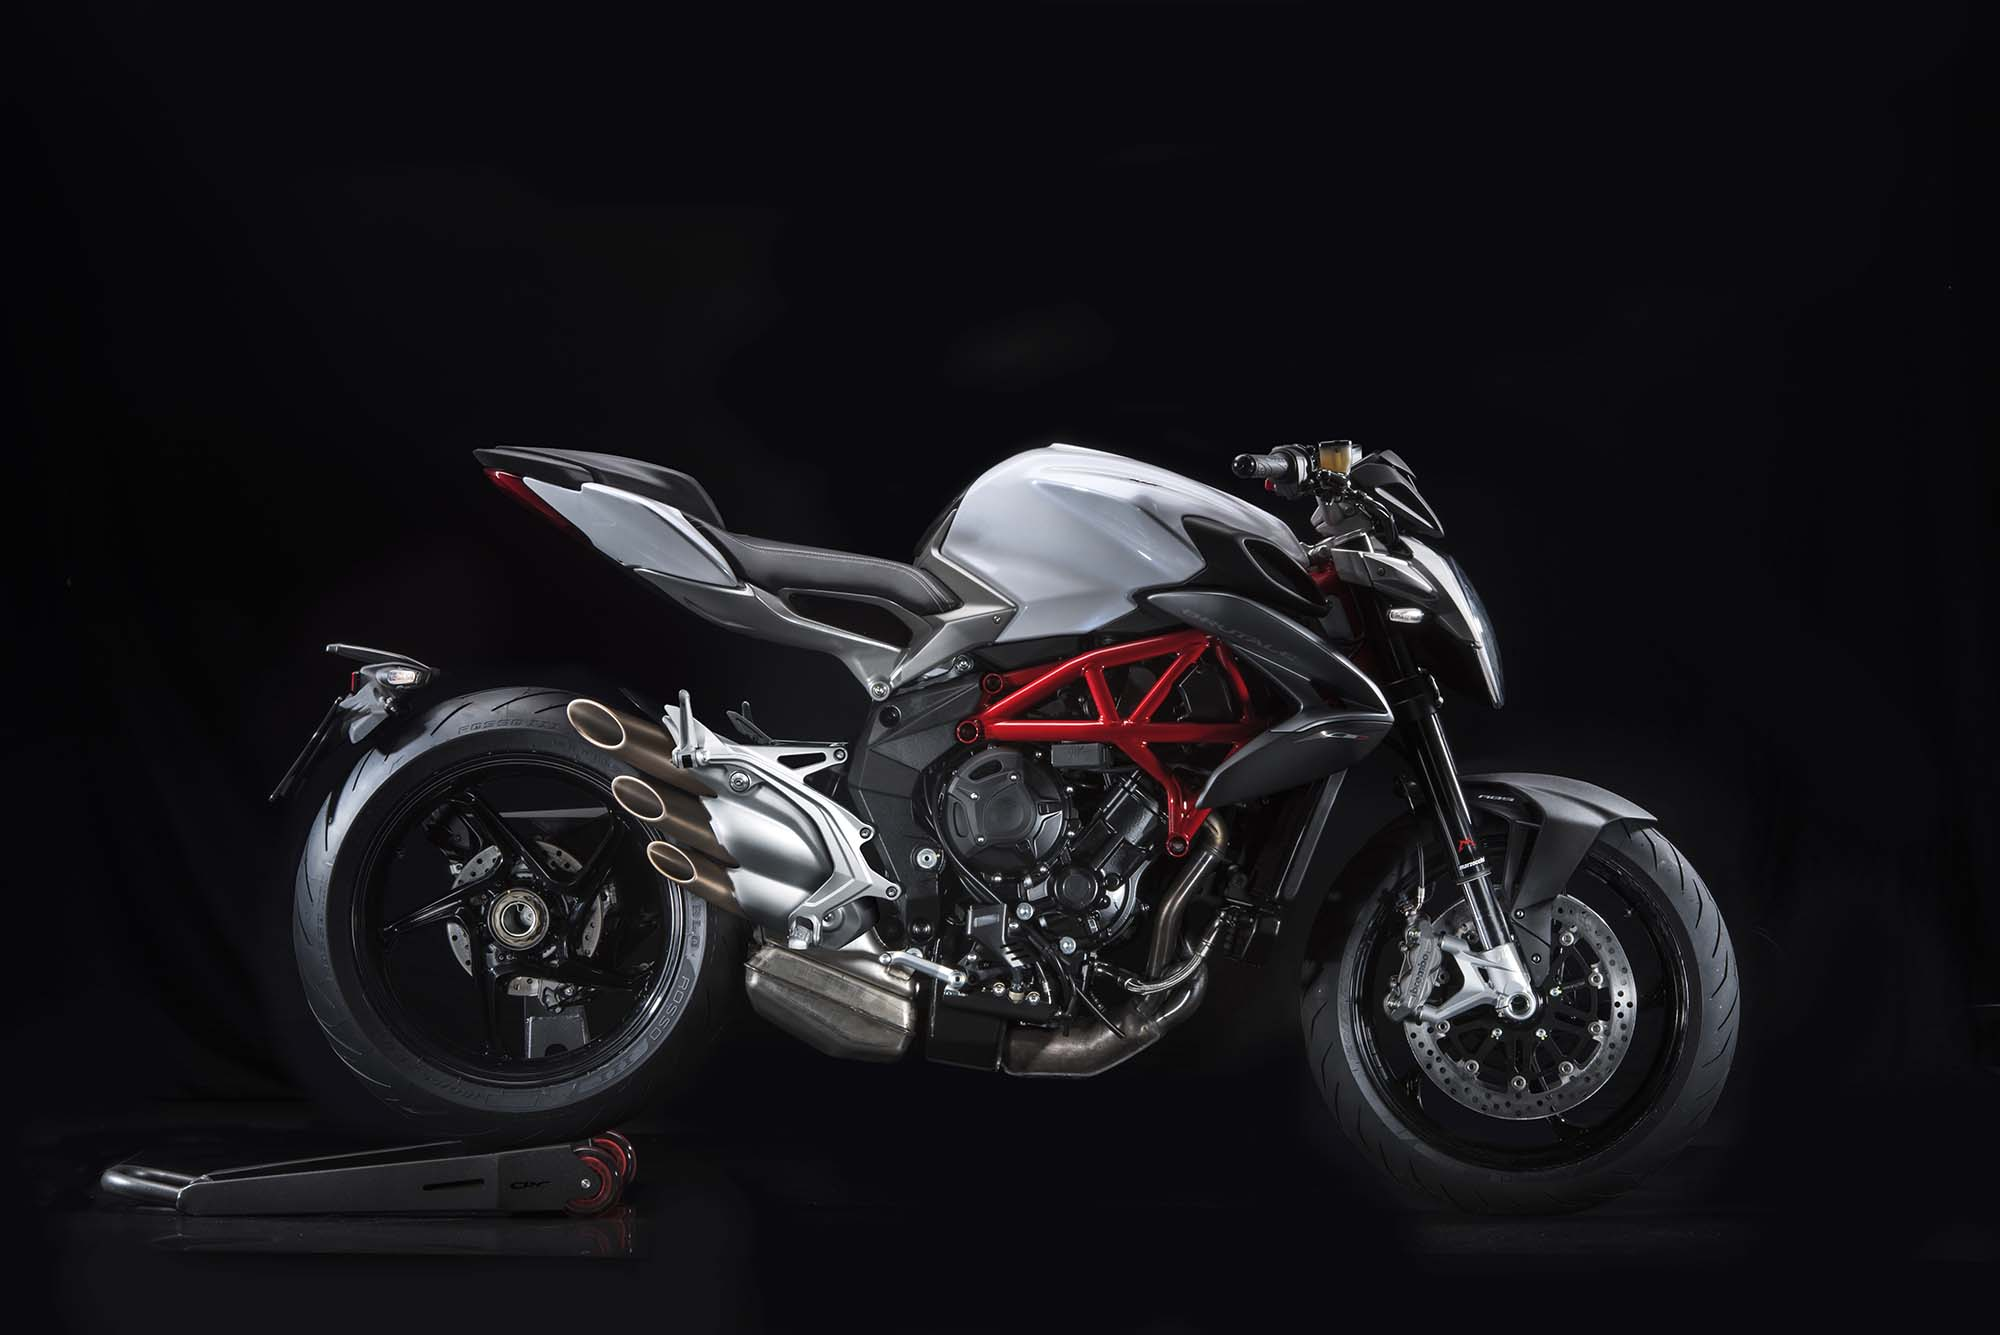 2016 mv agusta brutale 800. Black Bedroom Furniture Sets. Home Design Ideas